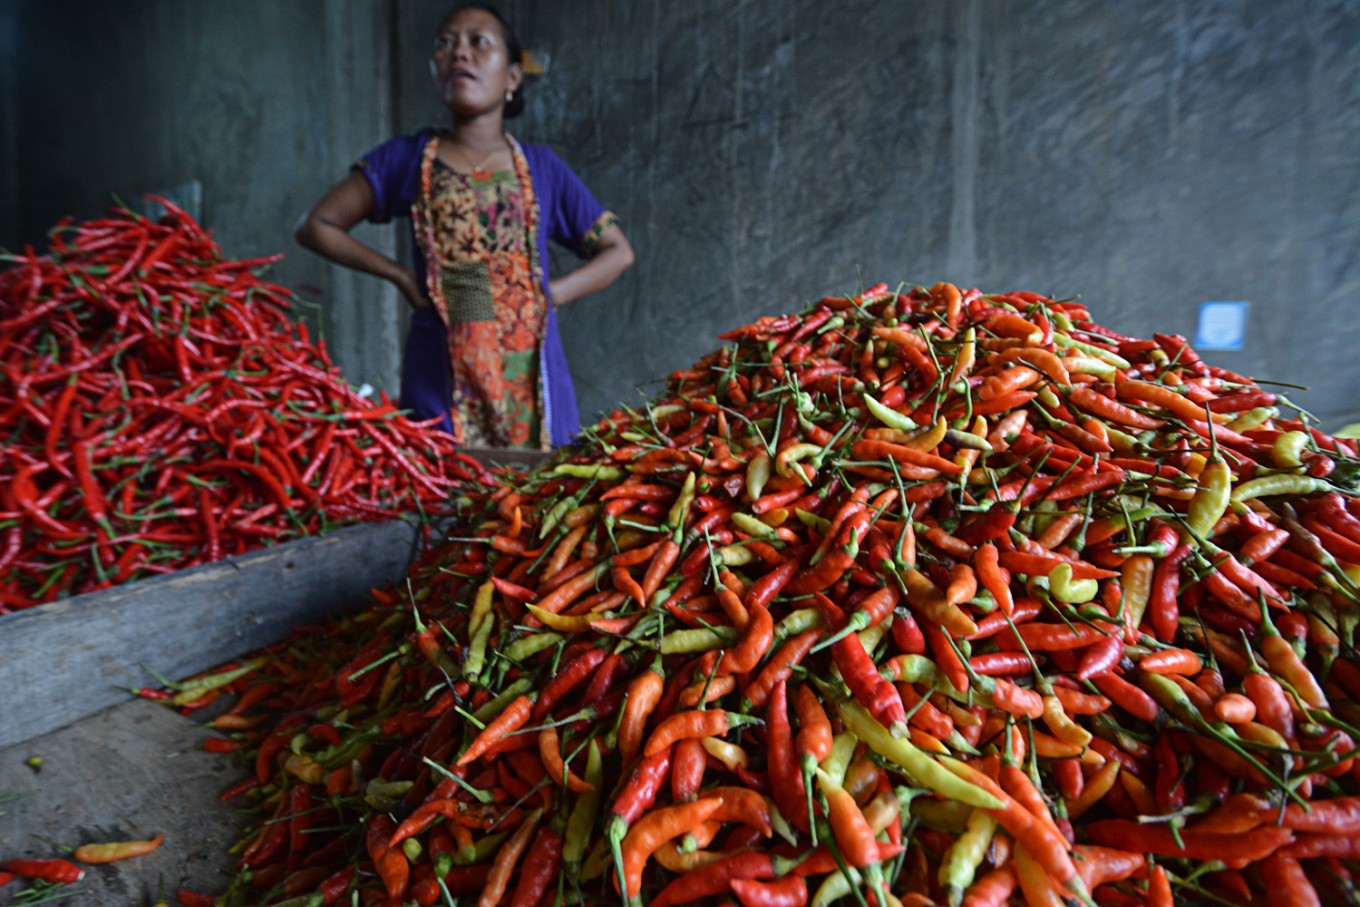 Police investigate chili wholesalers in Lombok